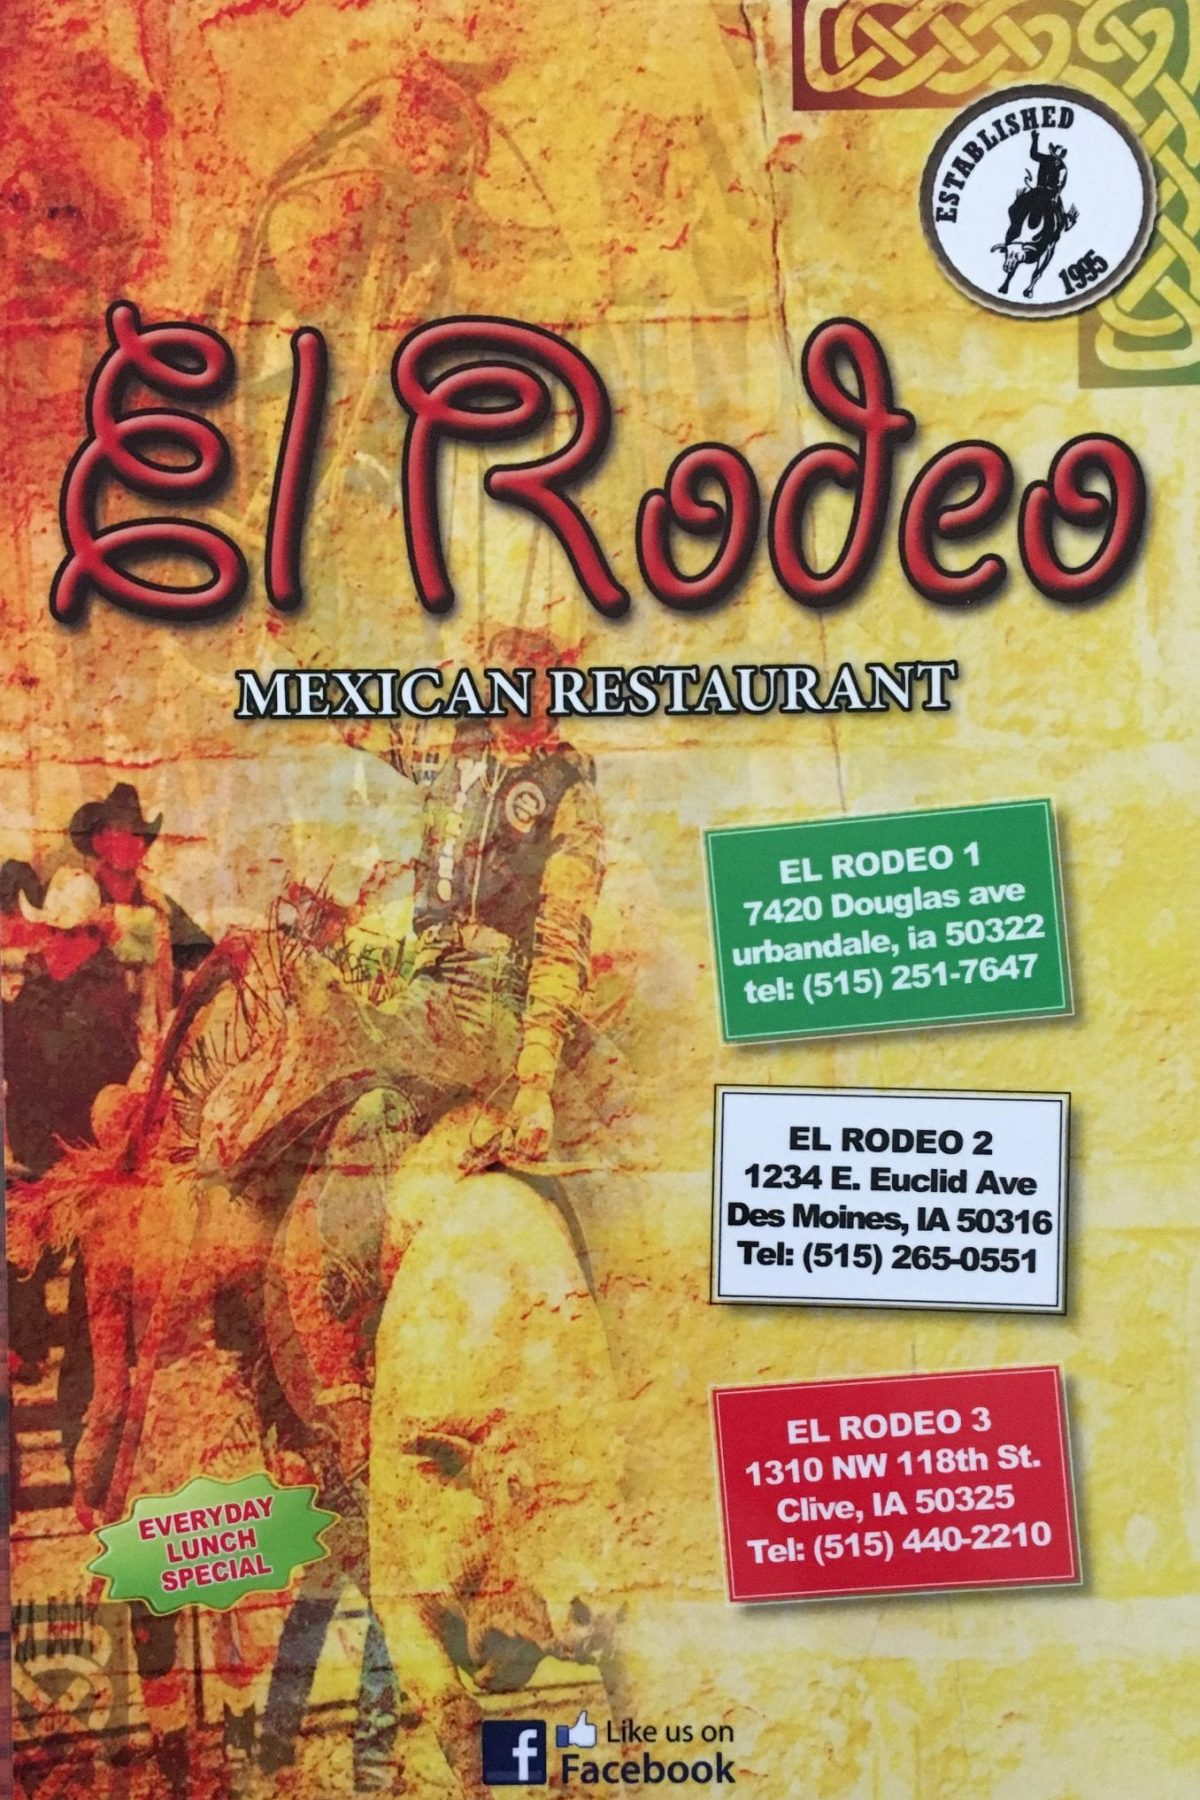 El Rodeo Menu